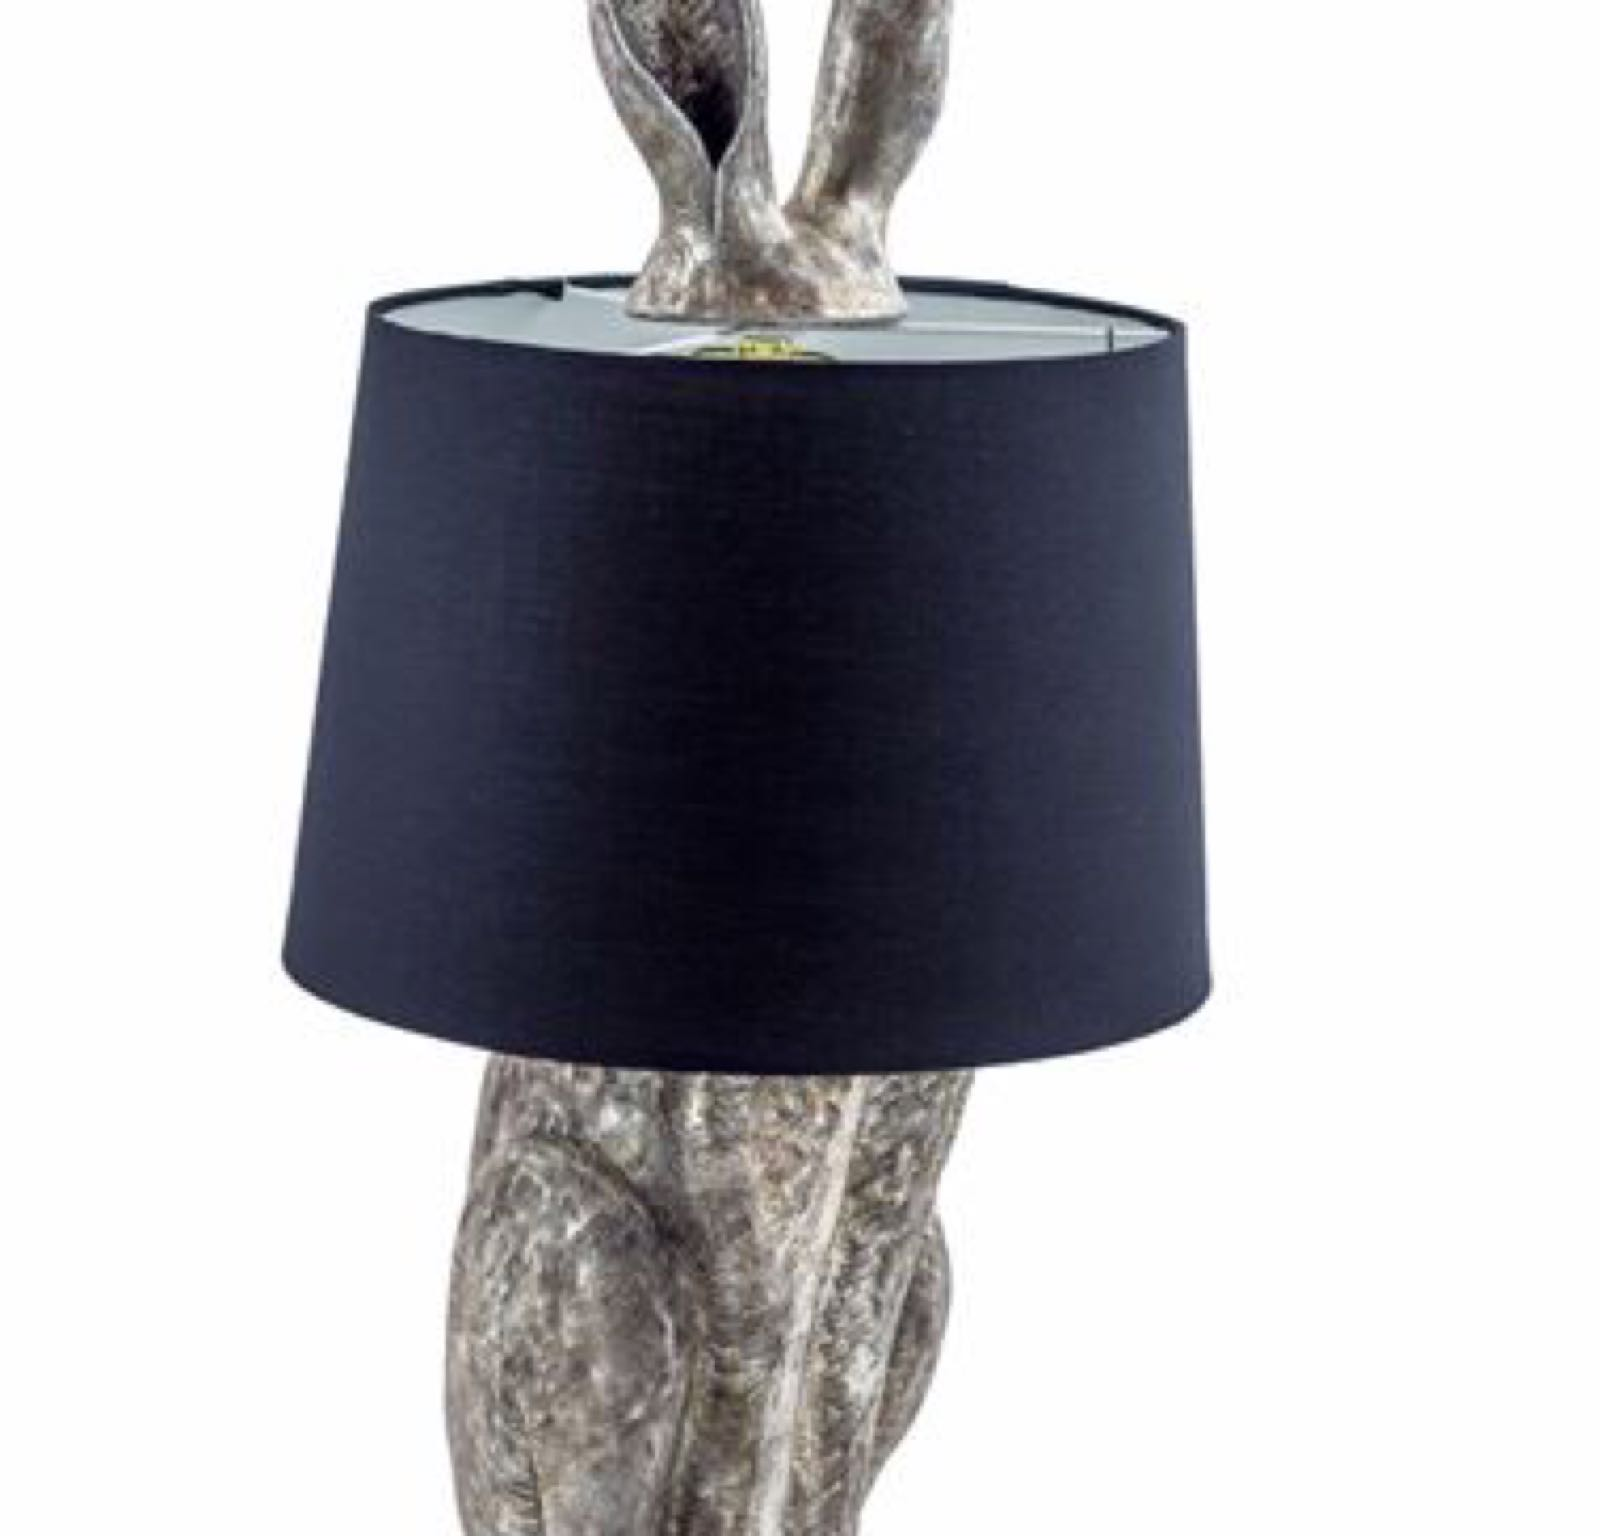 Antique Silver Rabbit Lamp with Black shade TL78 74cm x 32 cm